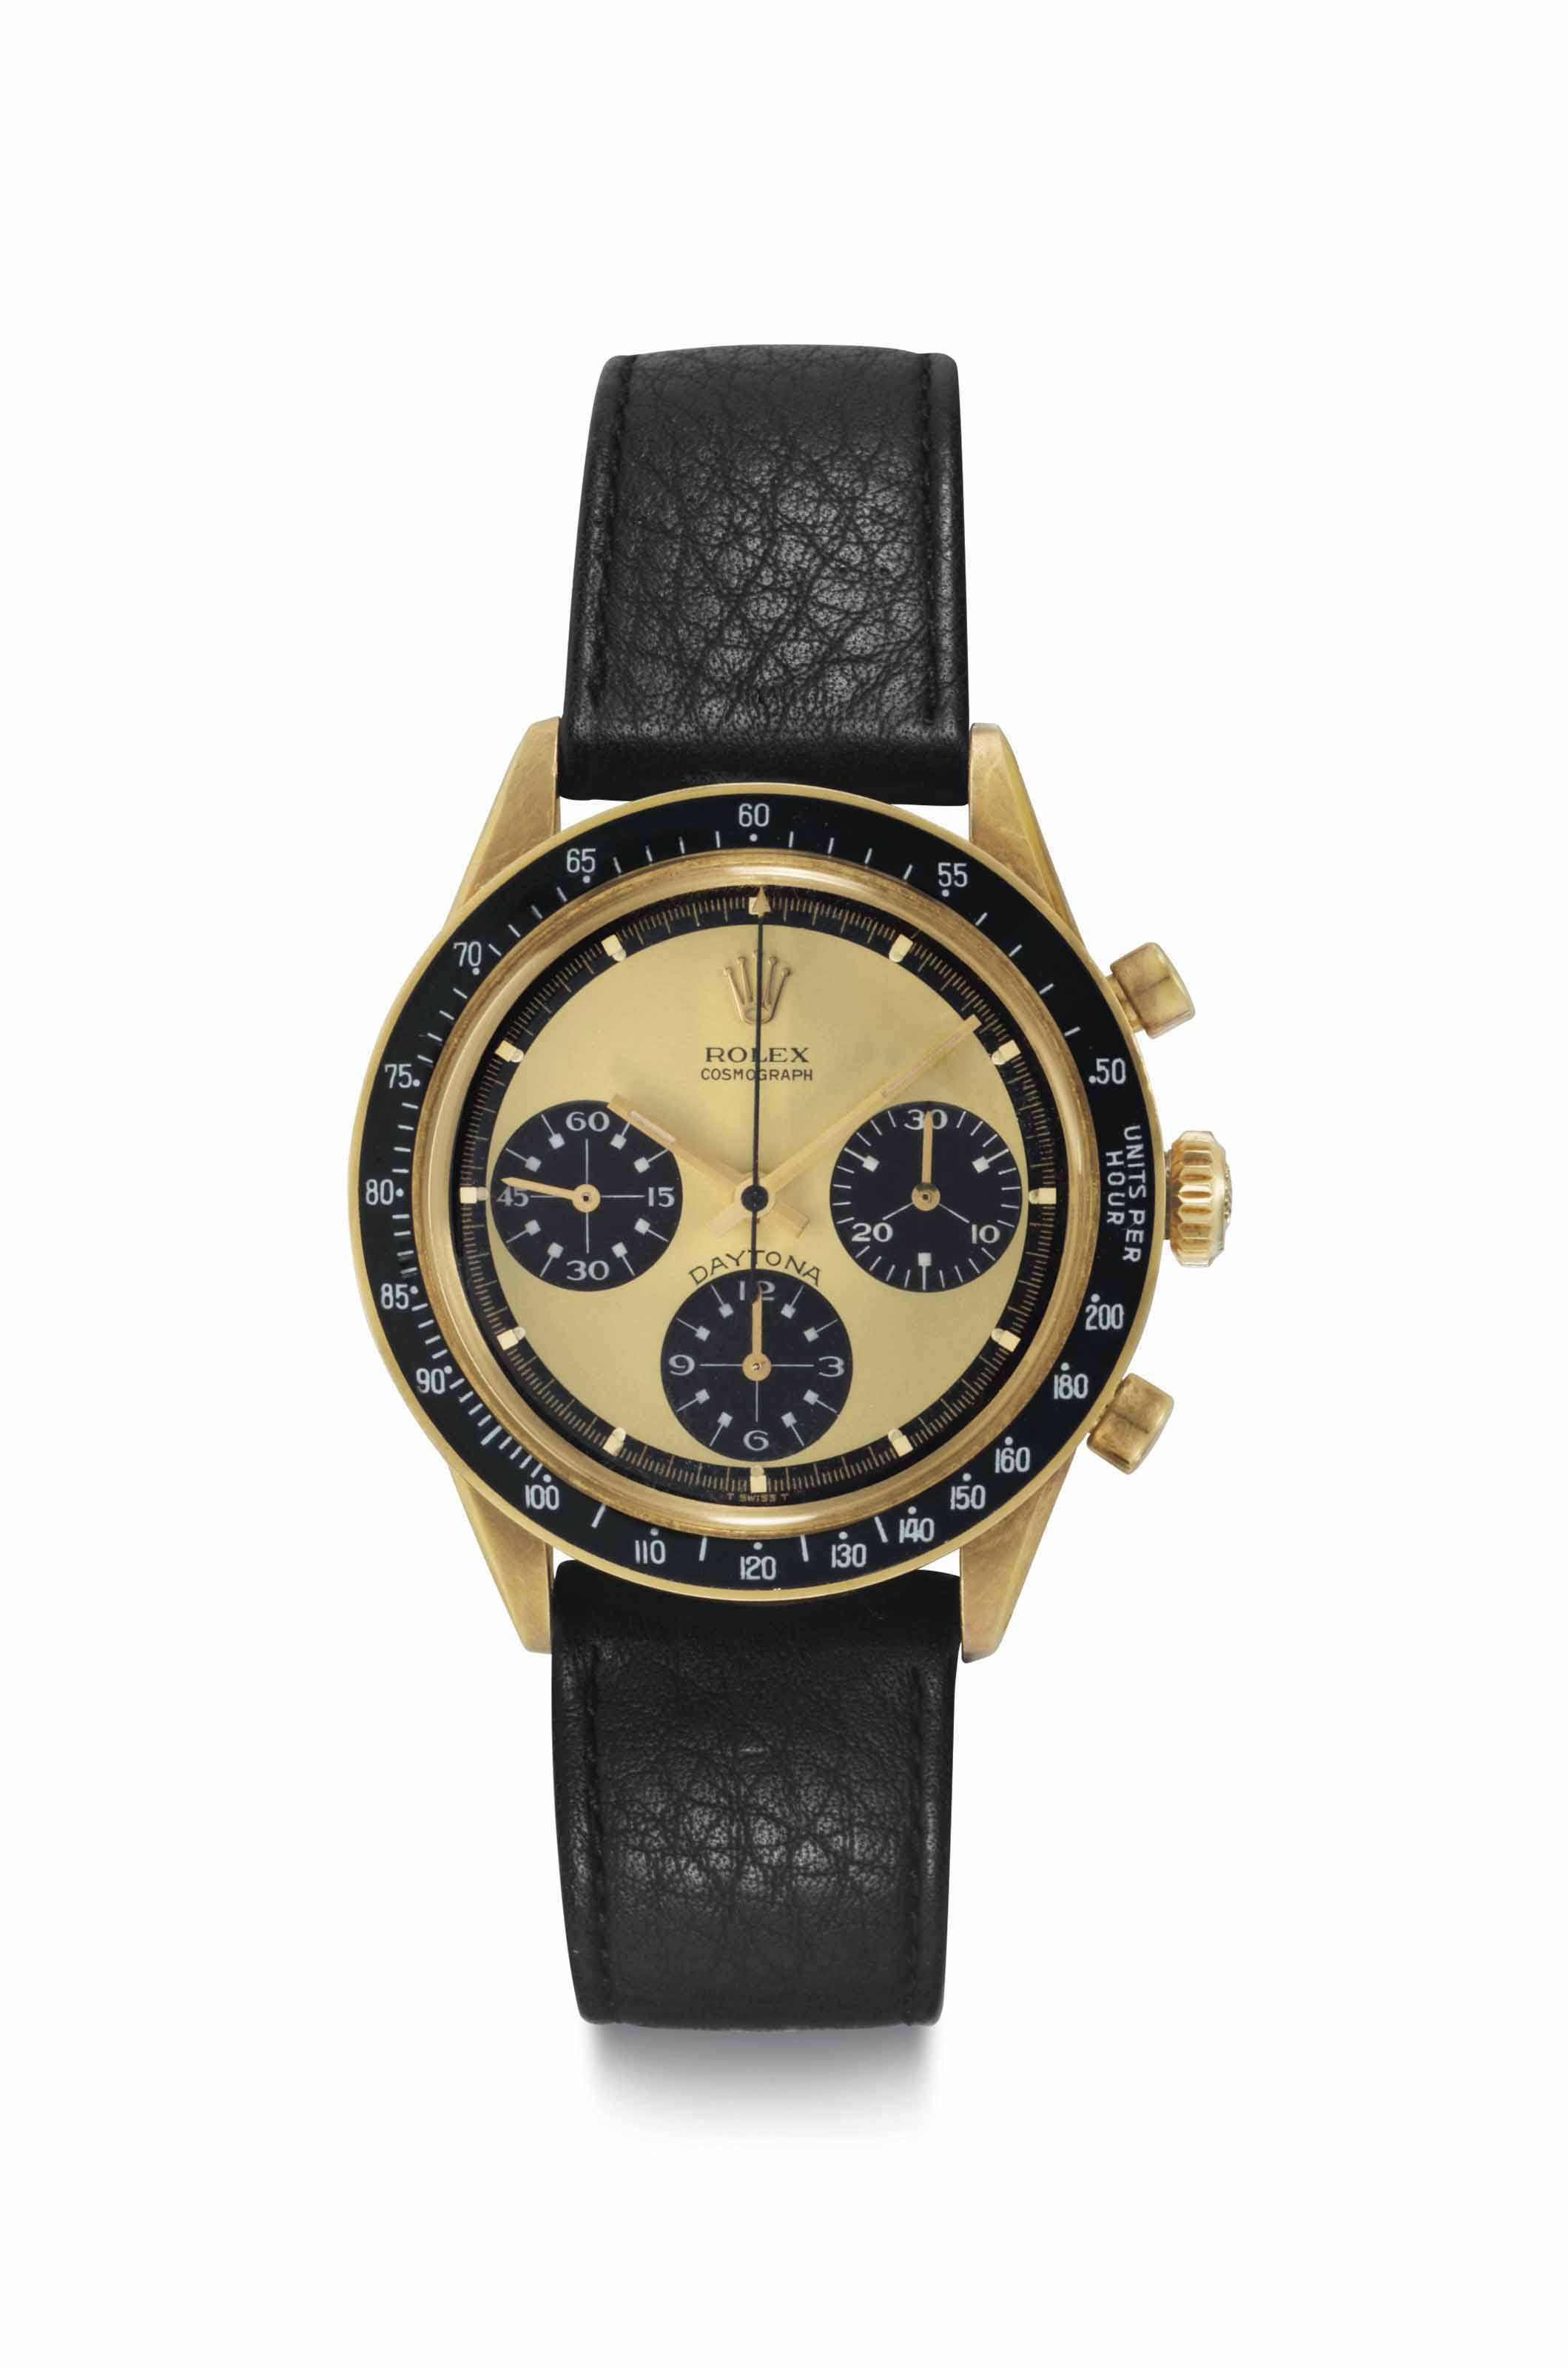 "Rolex. An Extremely Rare, Fine, and Attractive 18k Gold Chronograph Wristwatch with Lemon ""Paul Newman"" Dial and White Numerals to the Subsidiary Dials"